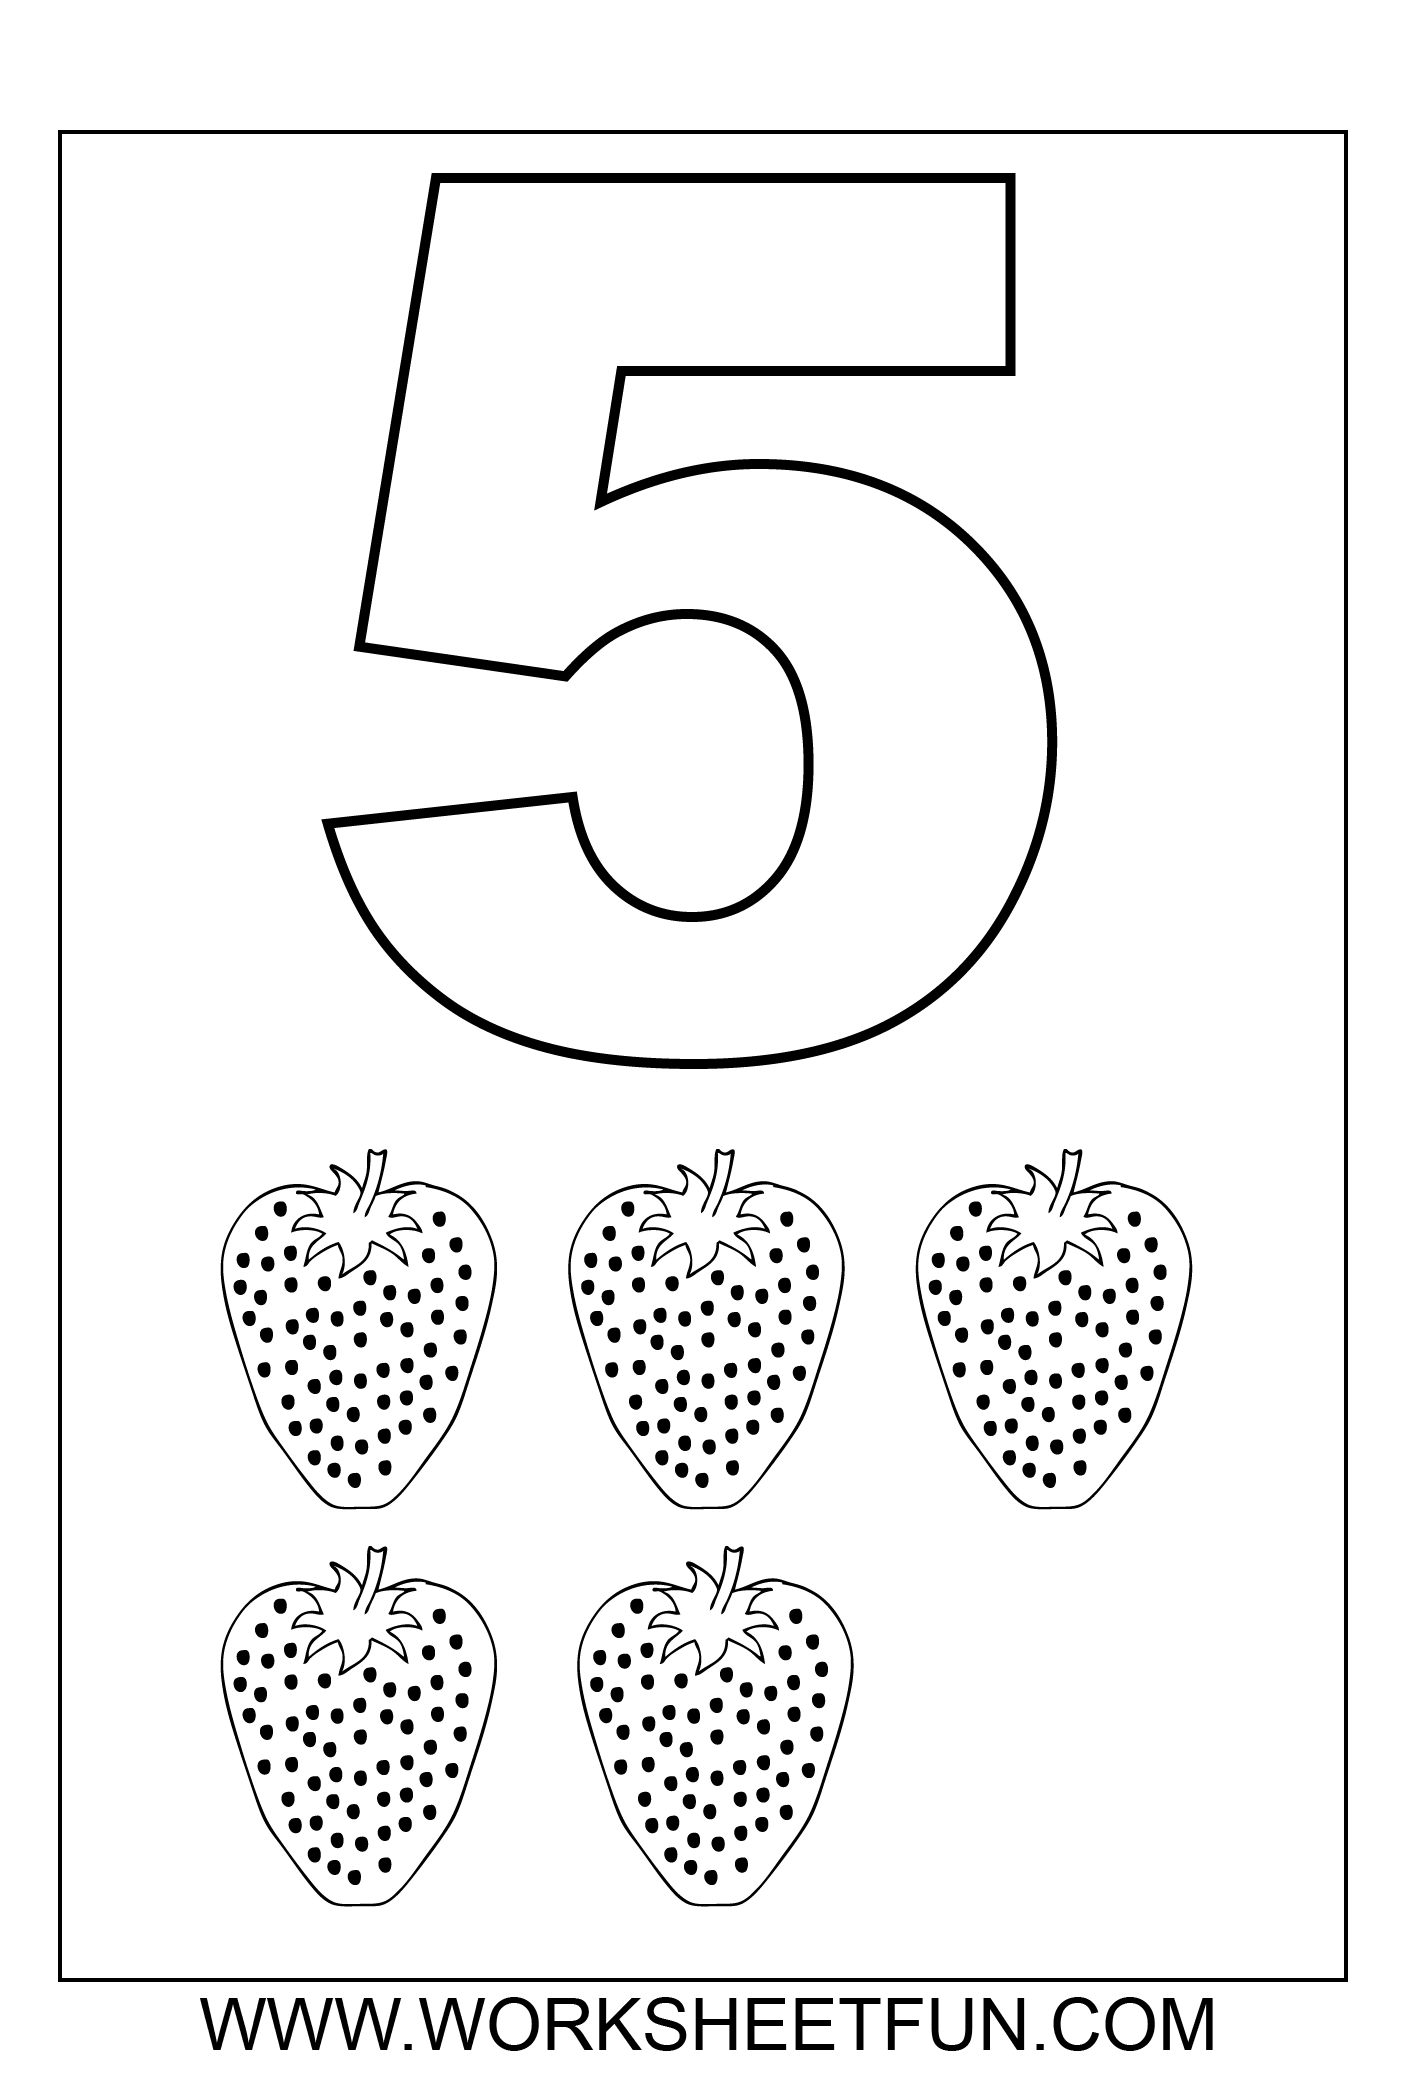 Free coloring pages numbers 1-10